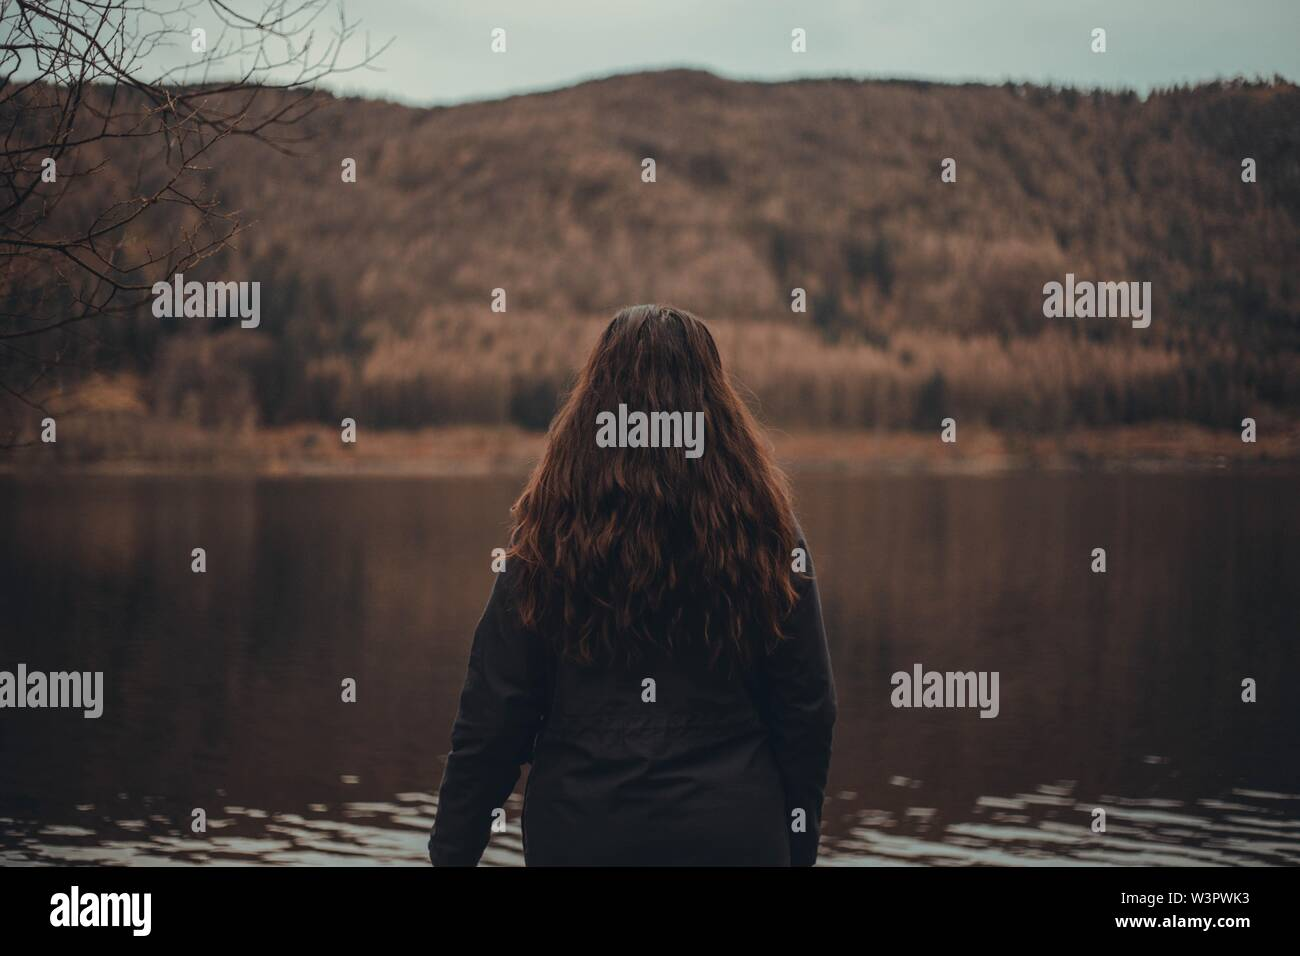 A female with long hair looking at a beautiful lake in a forest - Stock Image